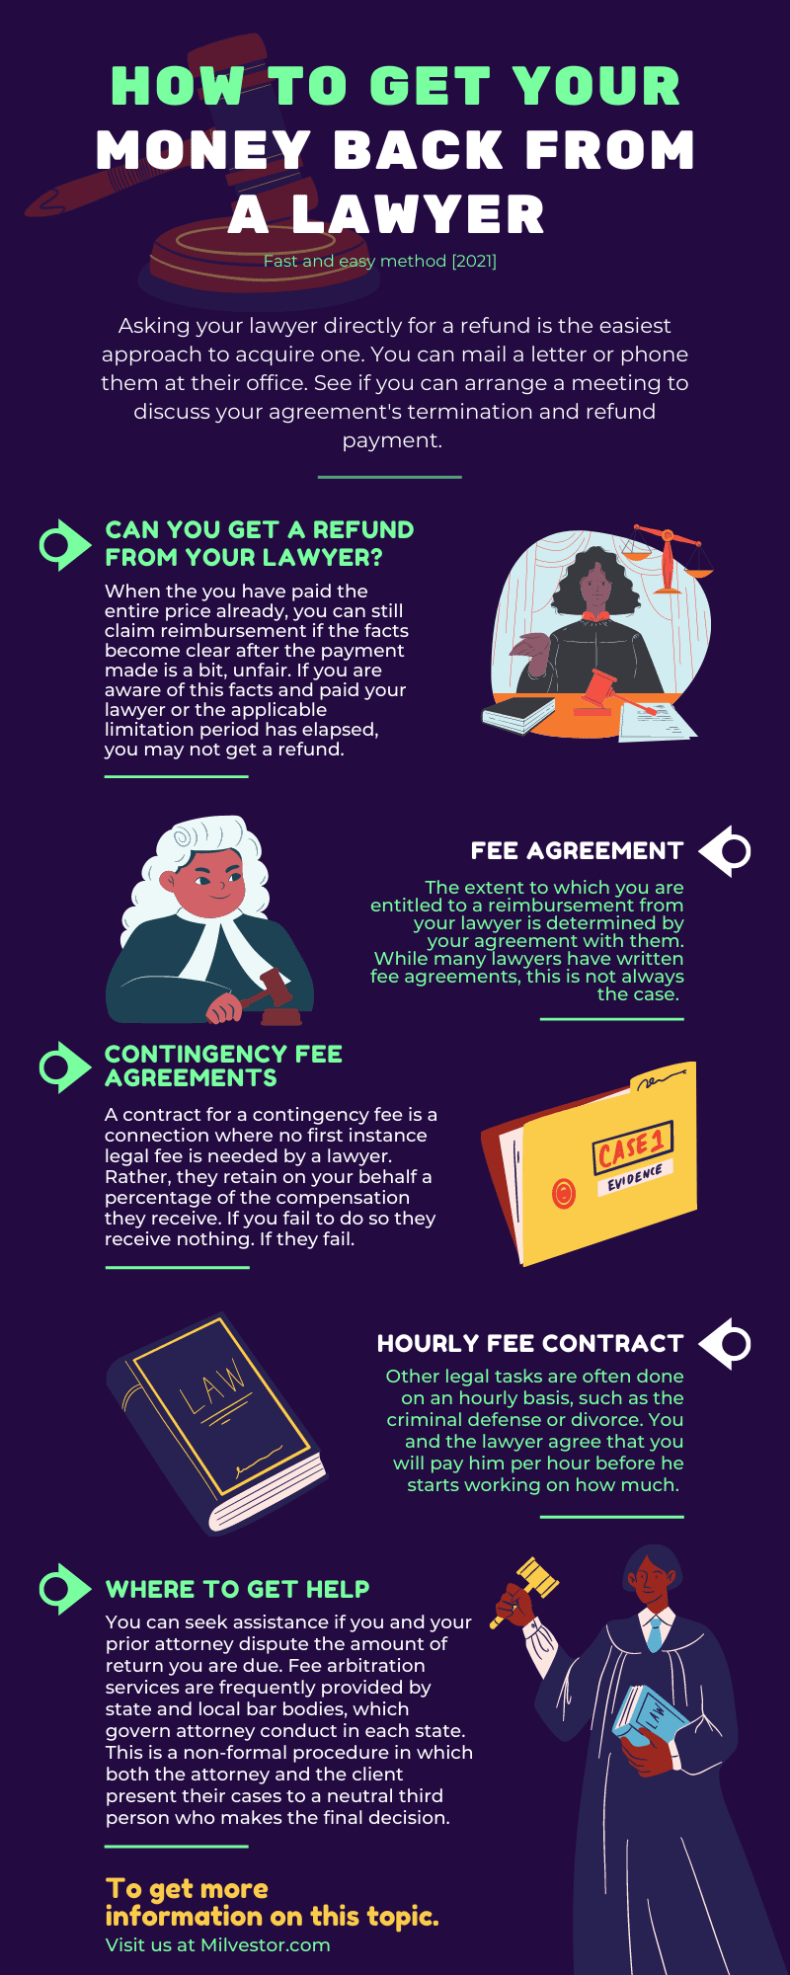 How to get your money back from a lawyer